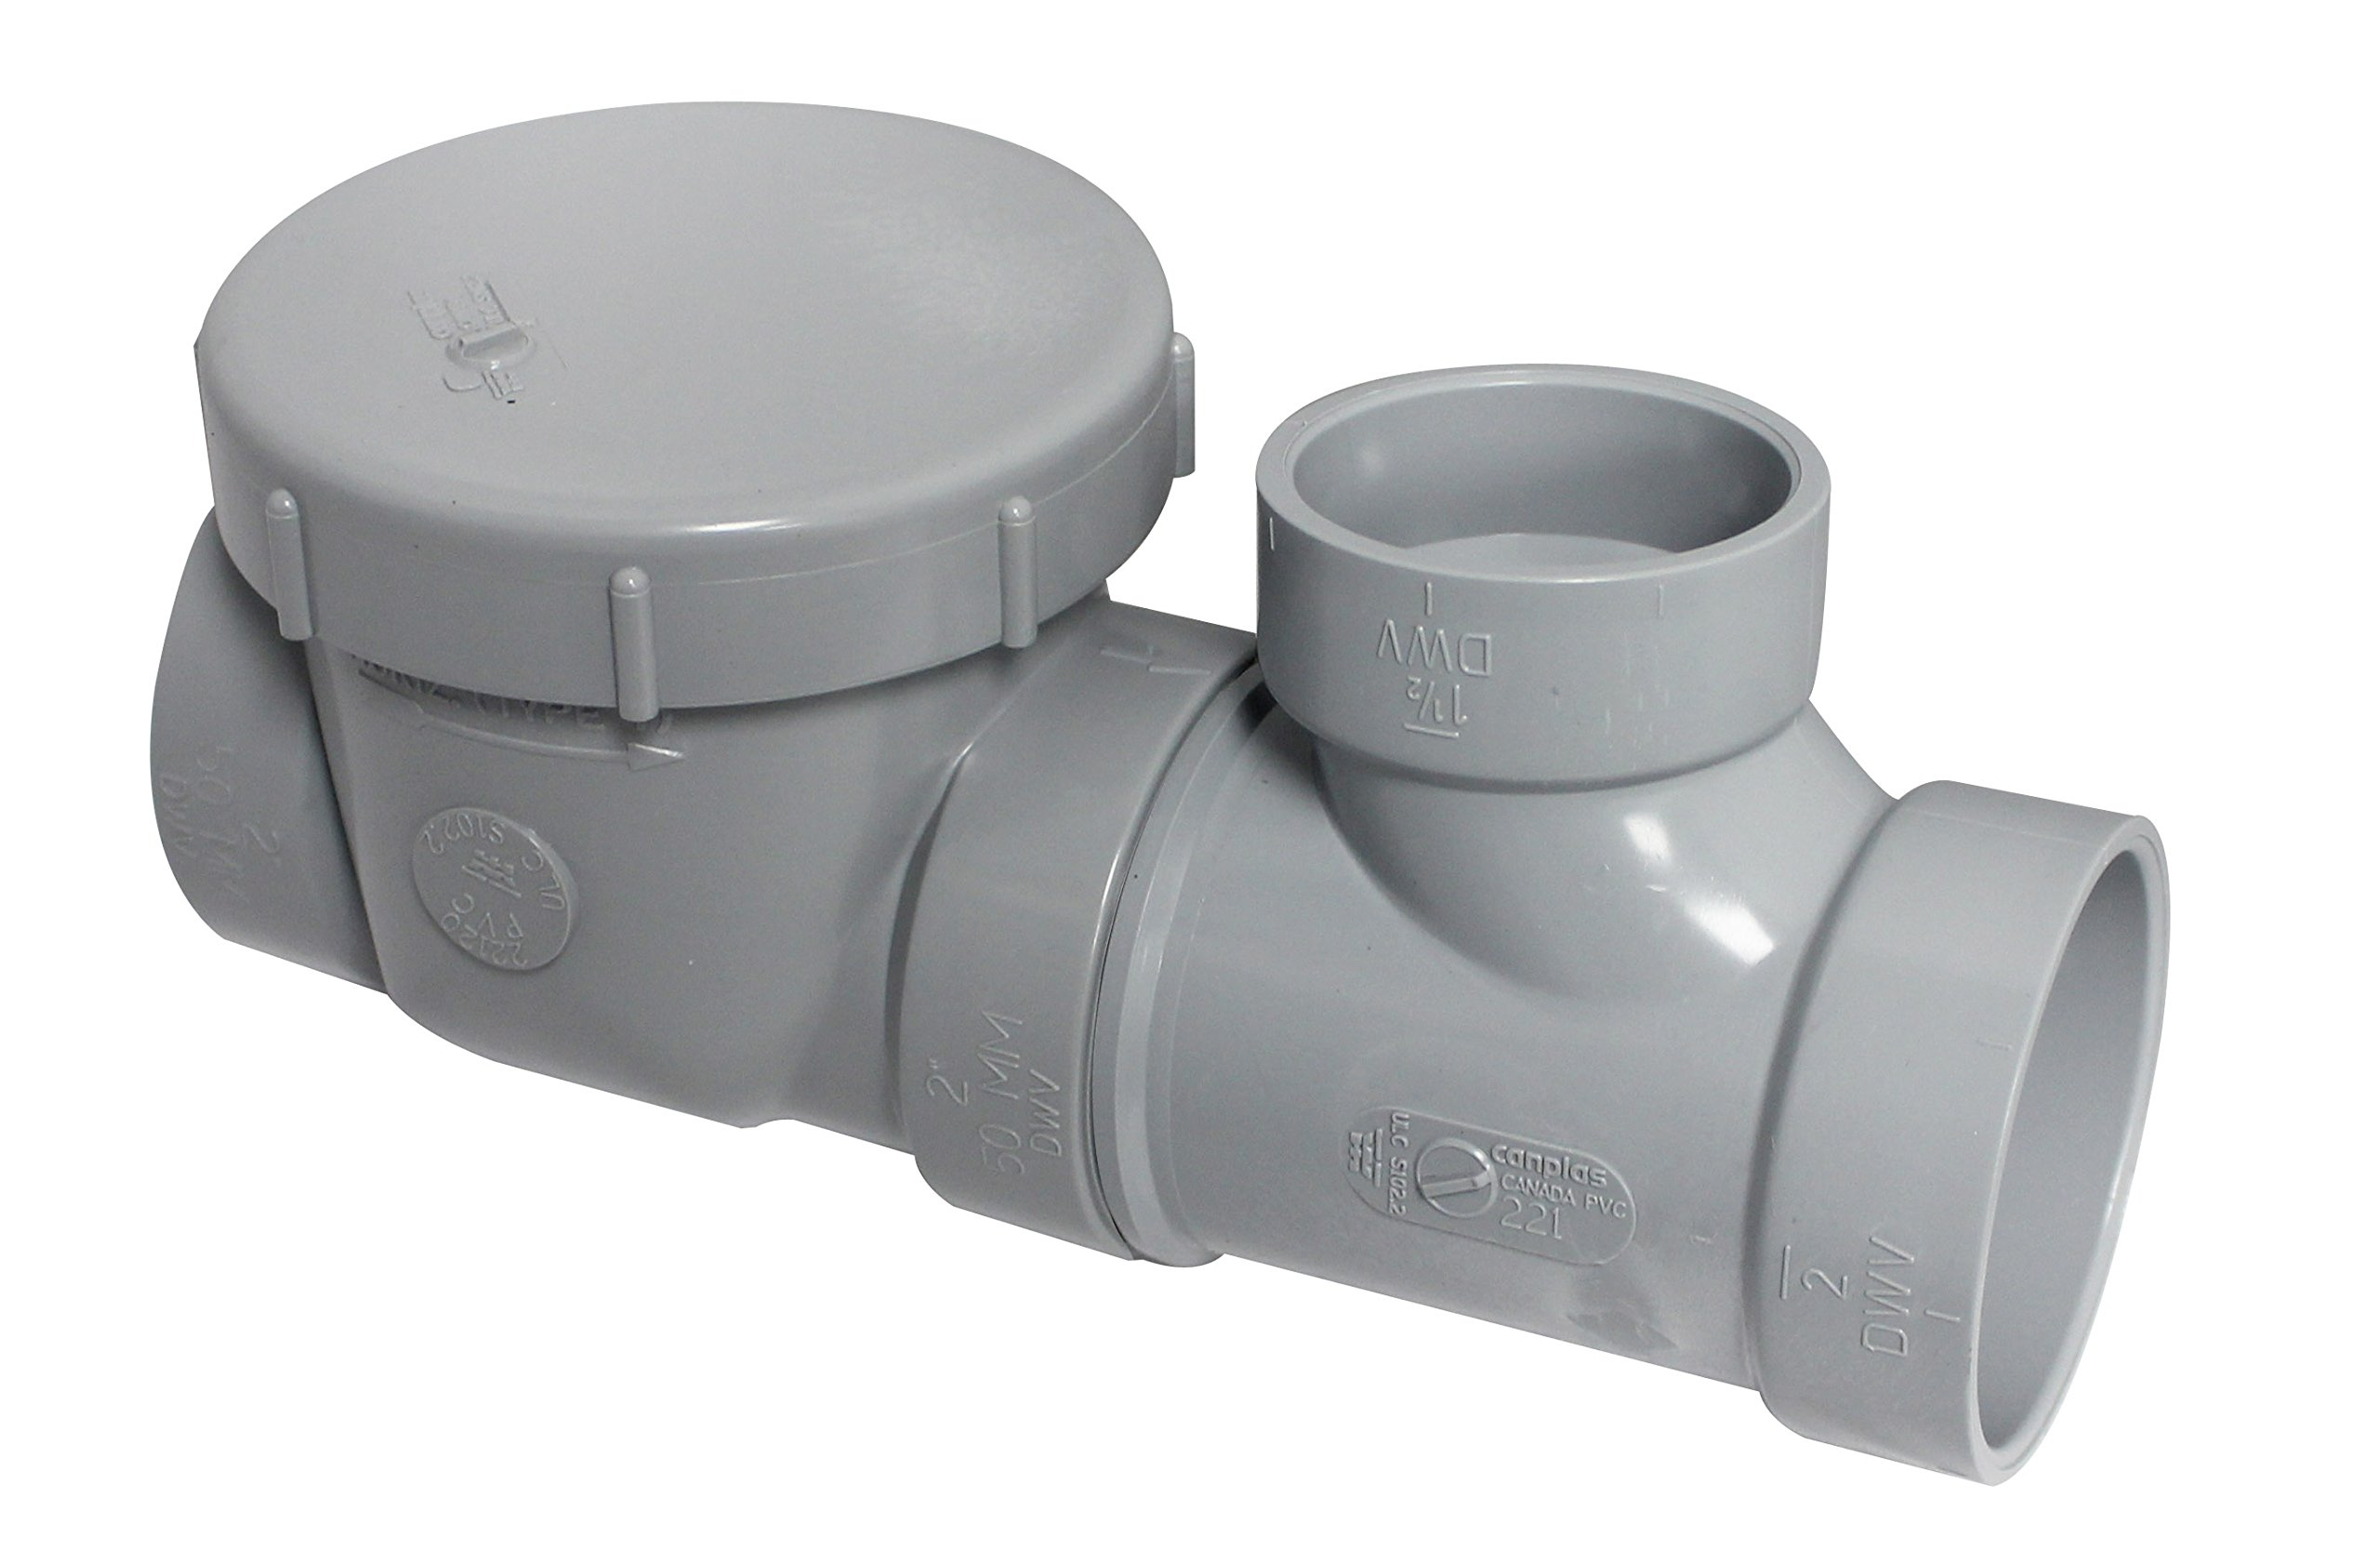 Endura 3922115 15 GPM Interceptor Flow Control with Cleanout, Air Intake and 2-Inch Connection